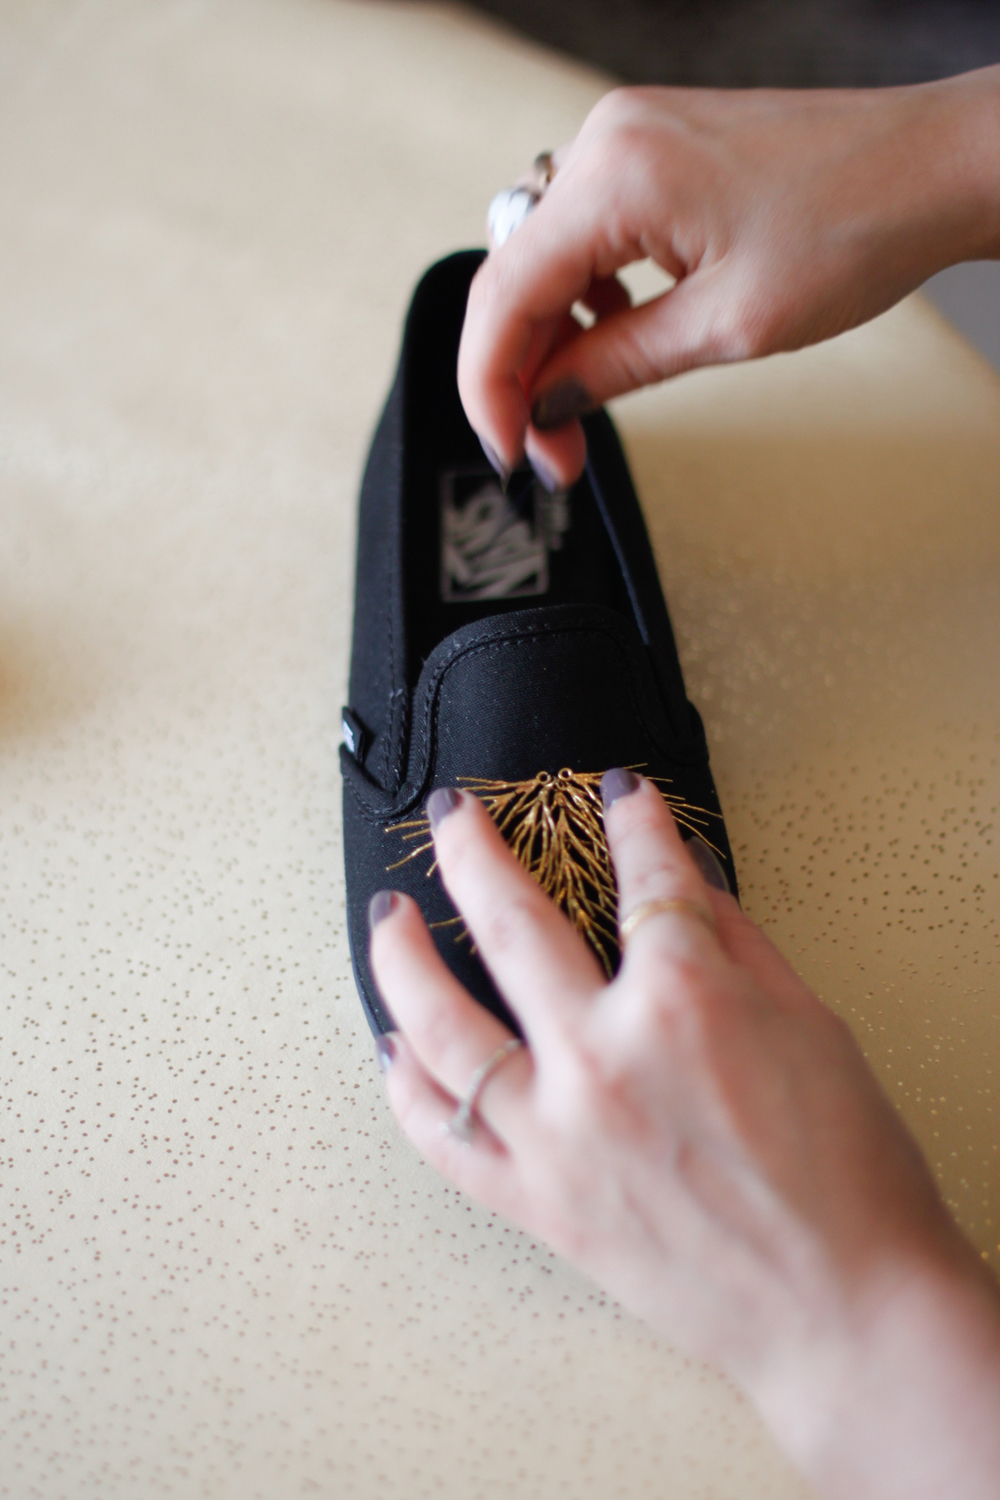 DIY sneakers stabilizing